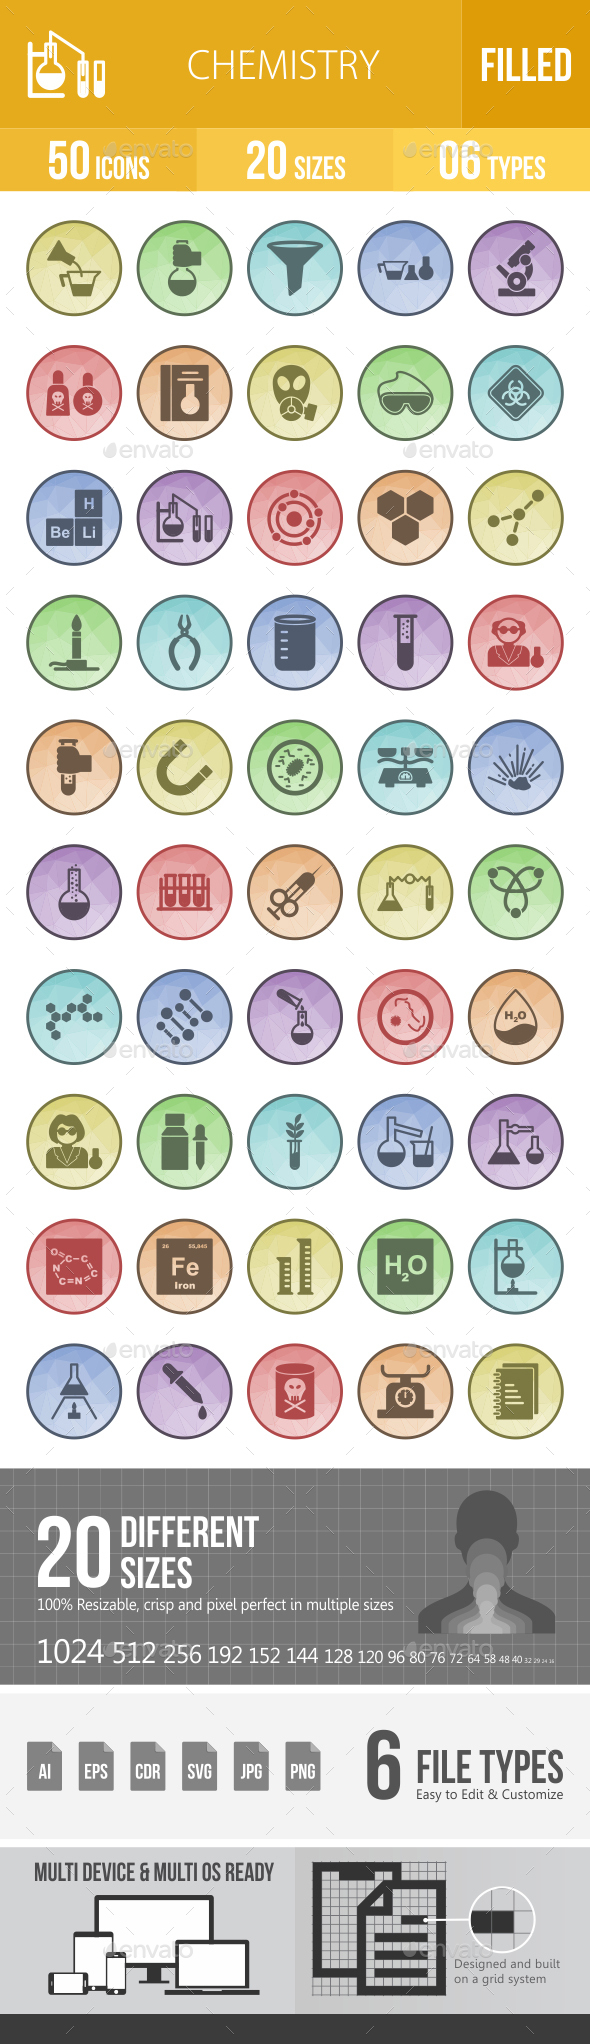 50 Chemistry Filled Low Poly B/G Icons - Icons